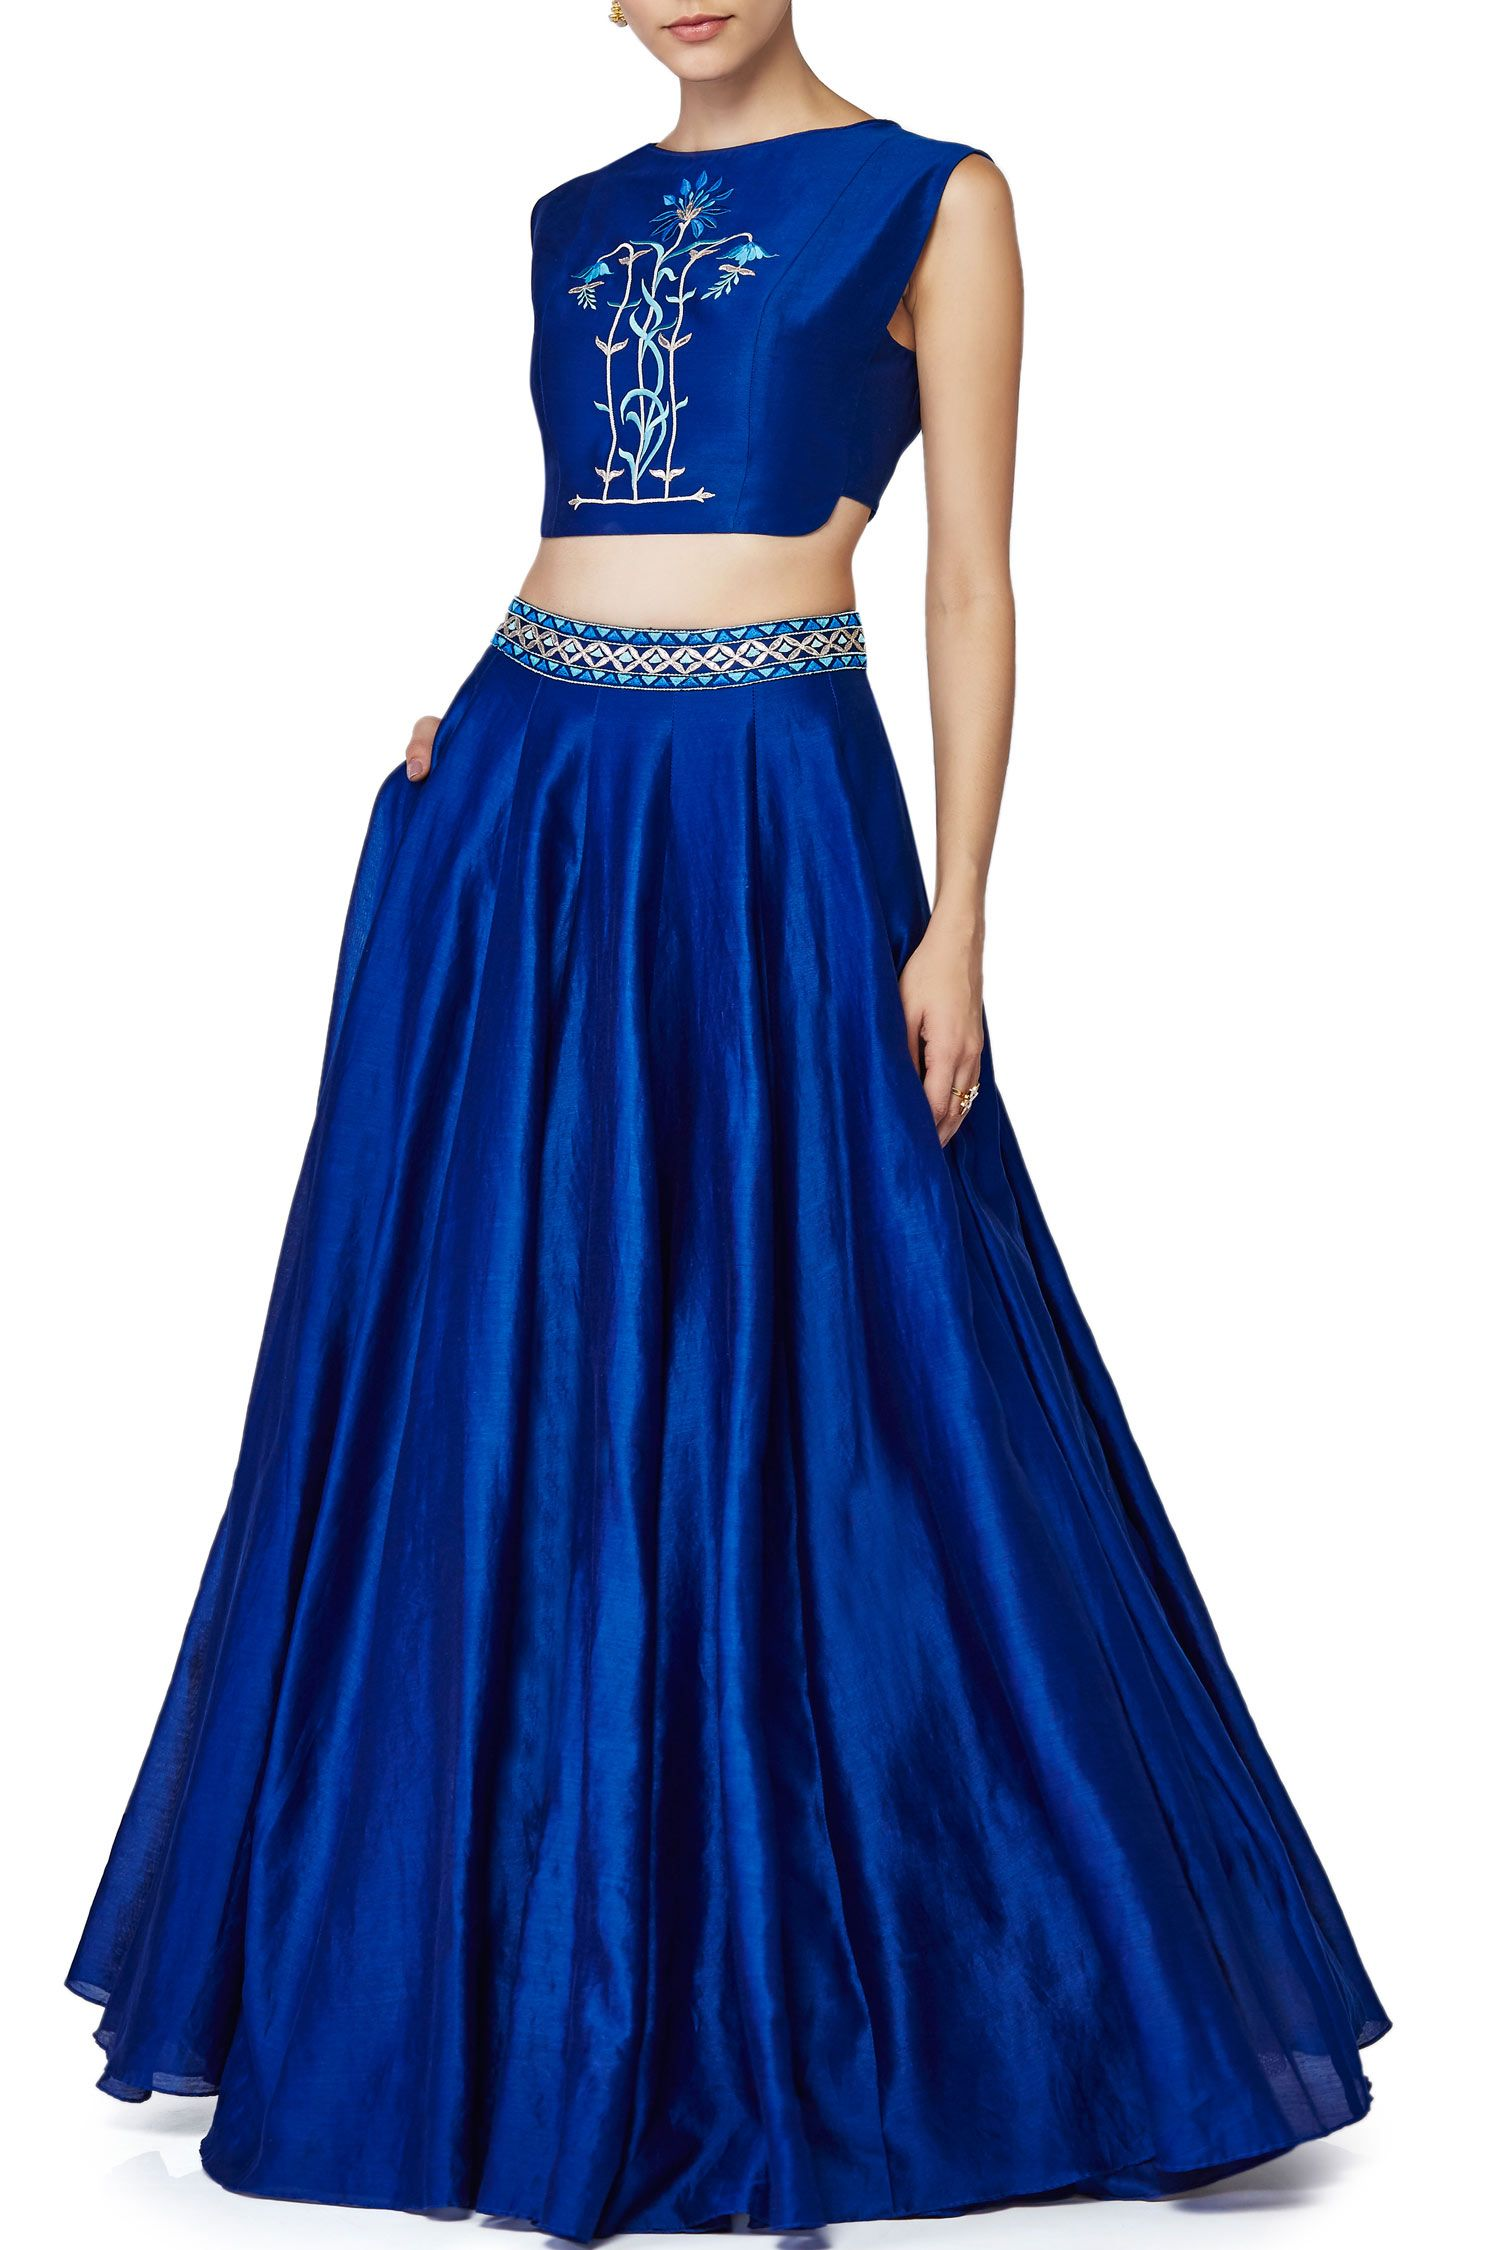 Anita dongre presents crop top and lehenga set indian for Indian wedding dresses for guests